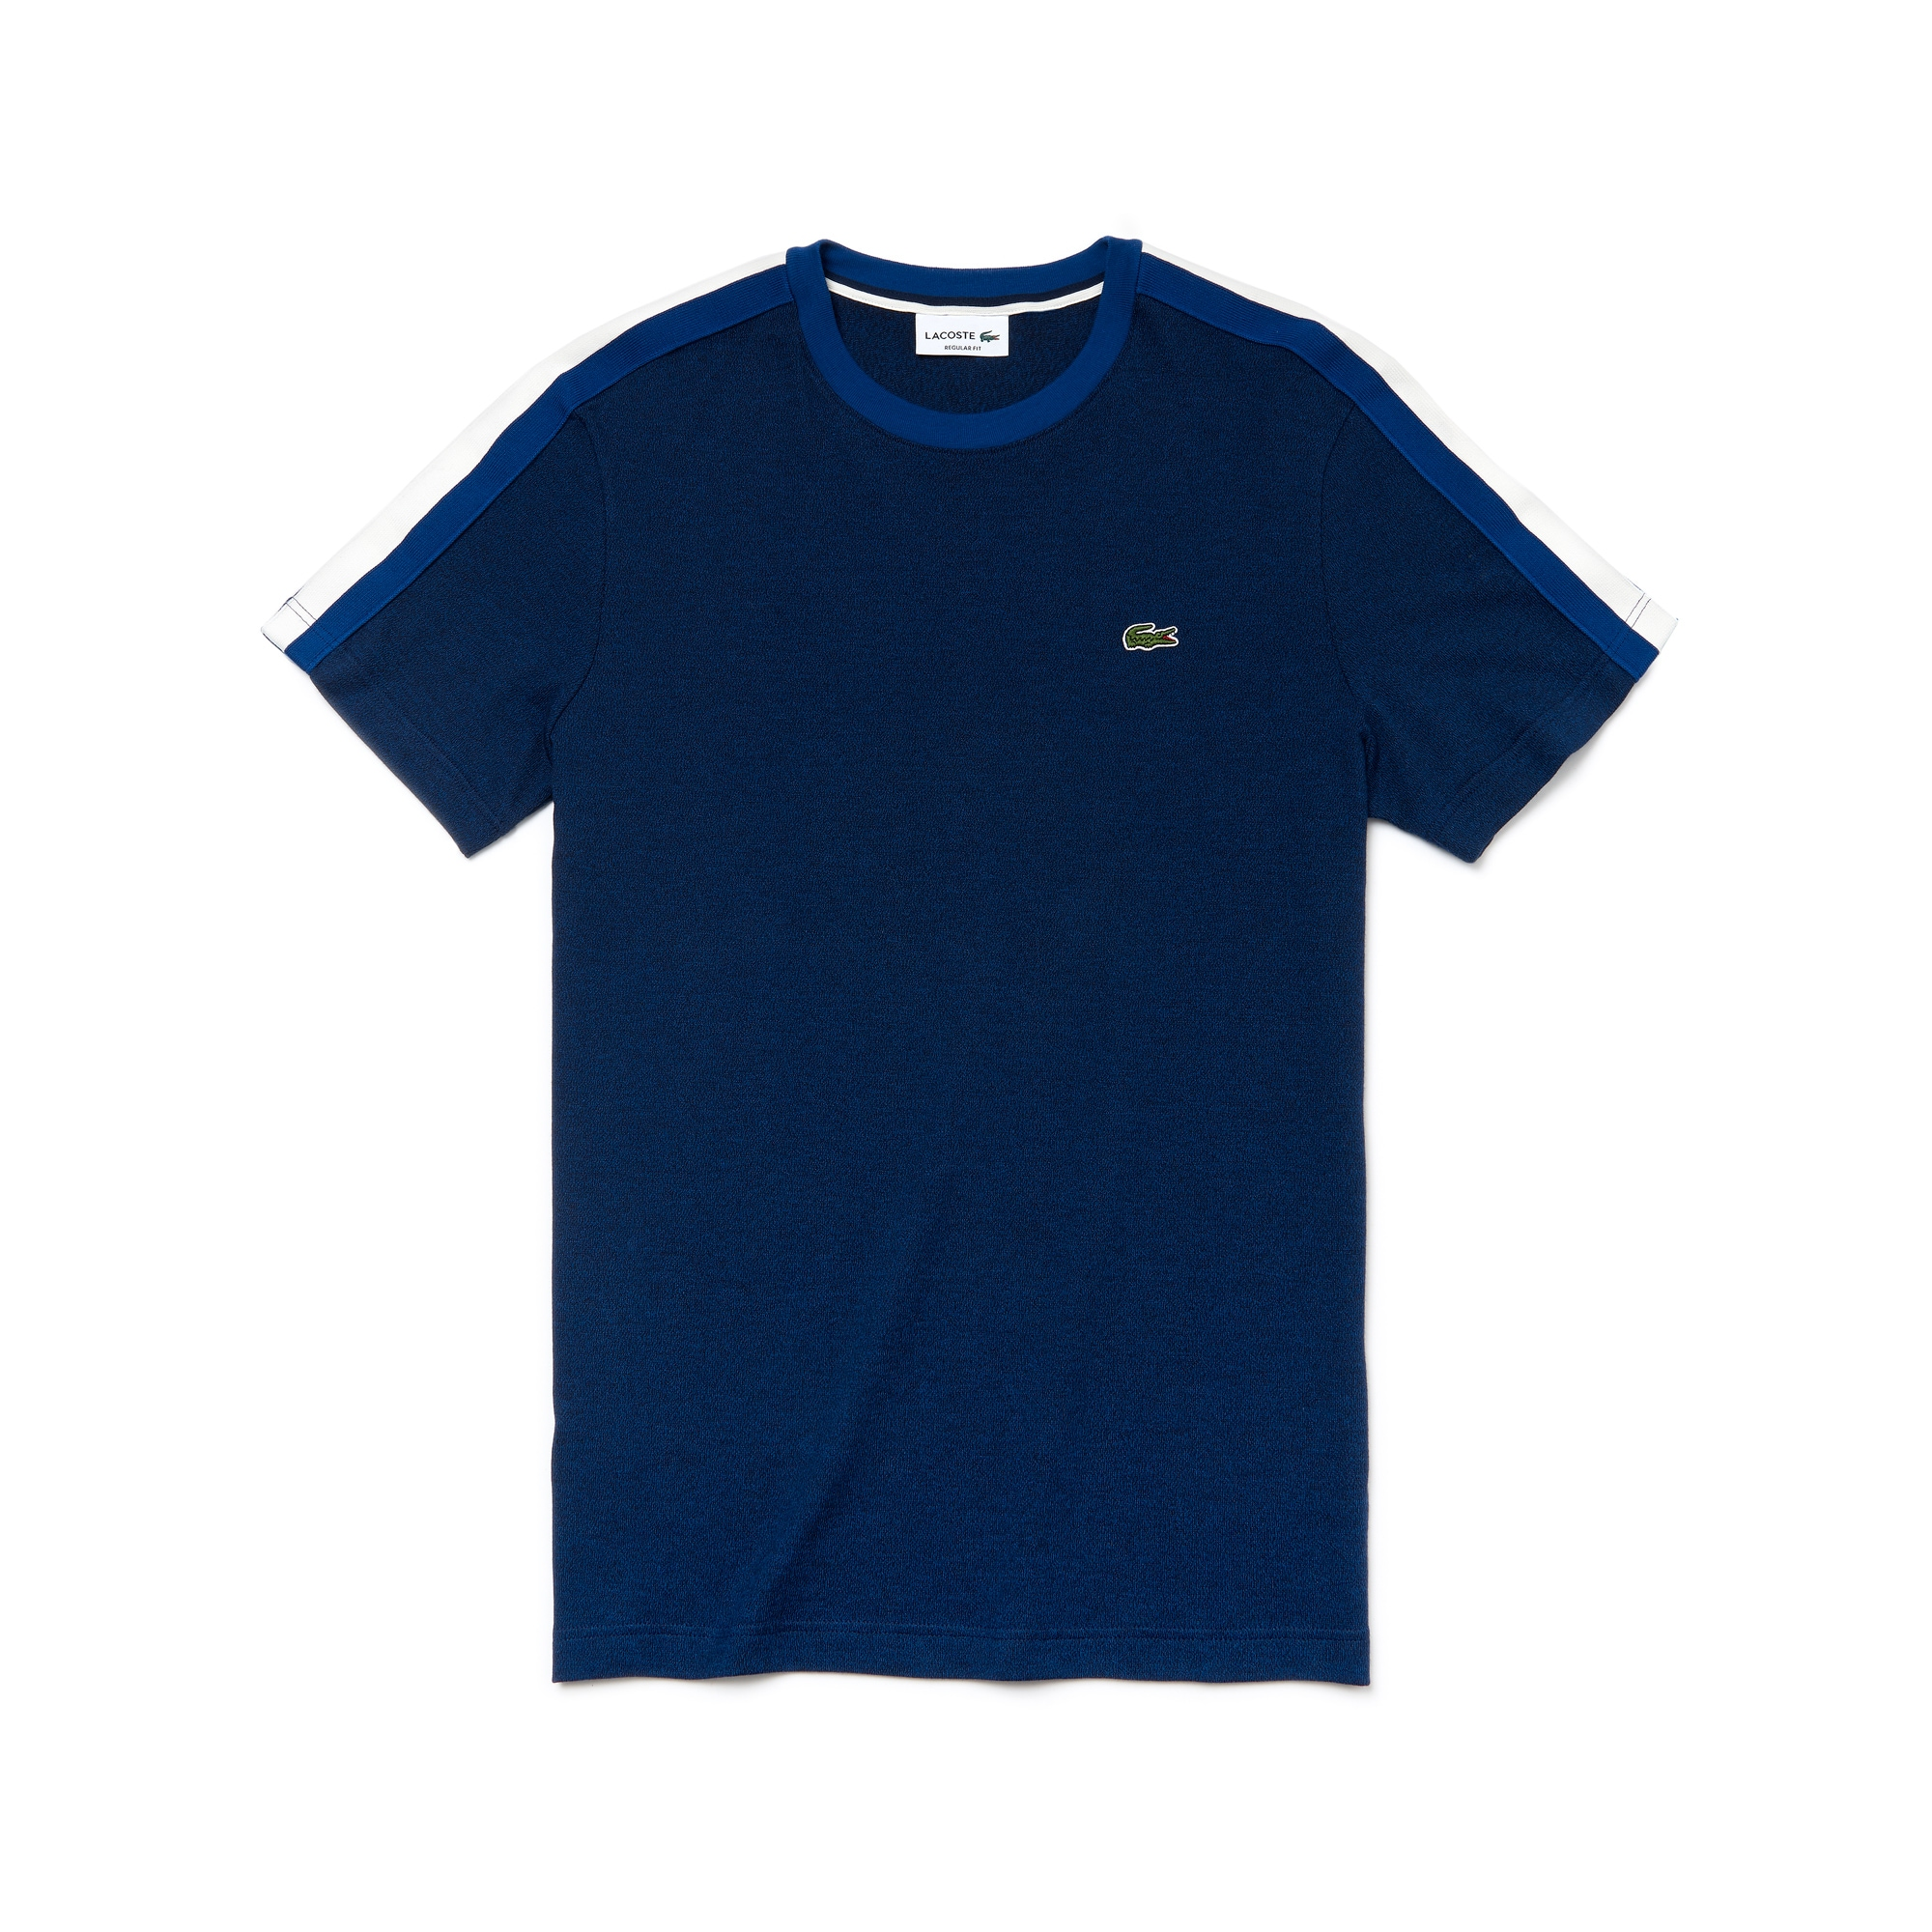 Men's Crew Neck Contrast Band Jersey T-shirt